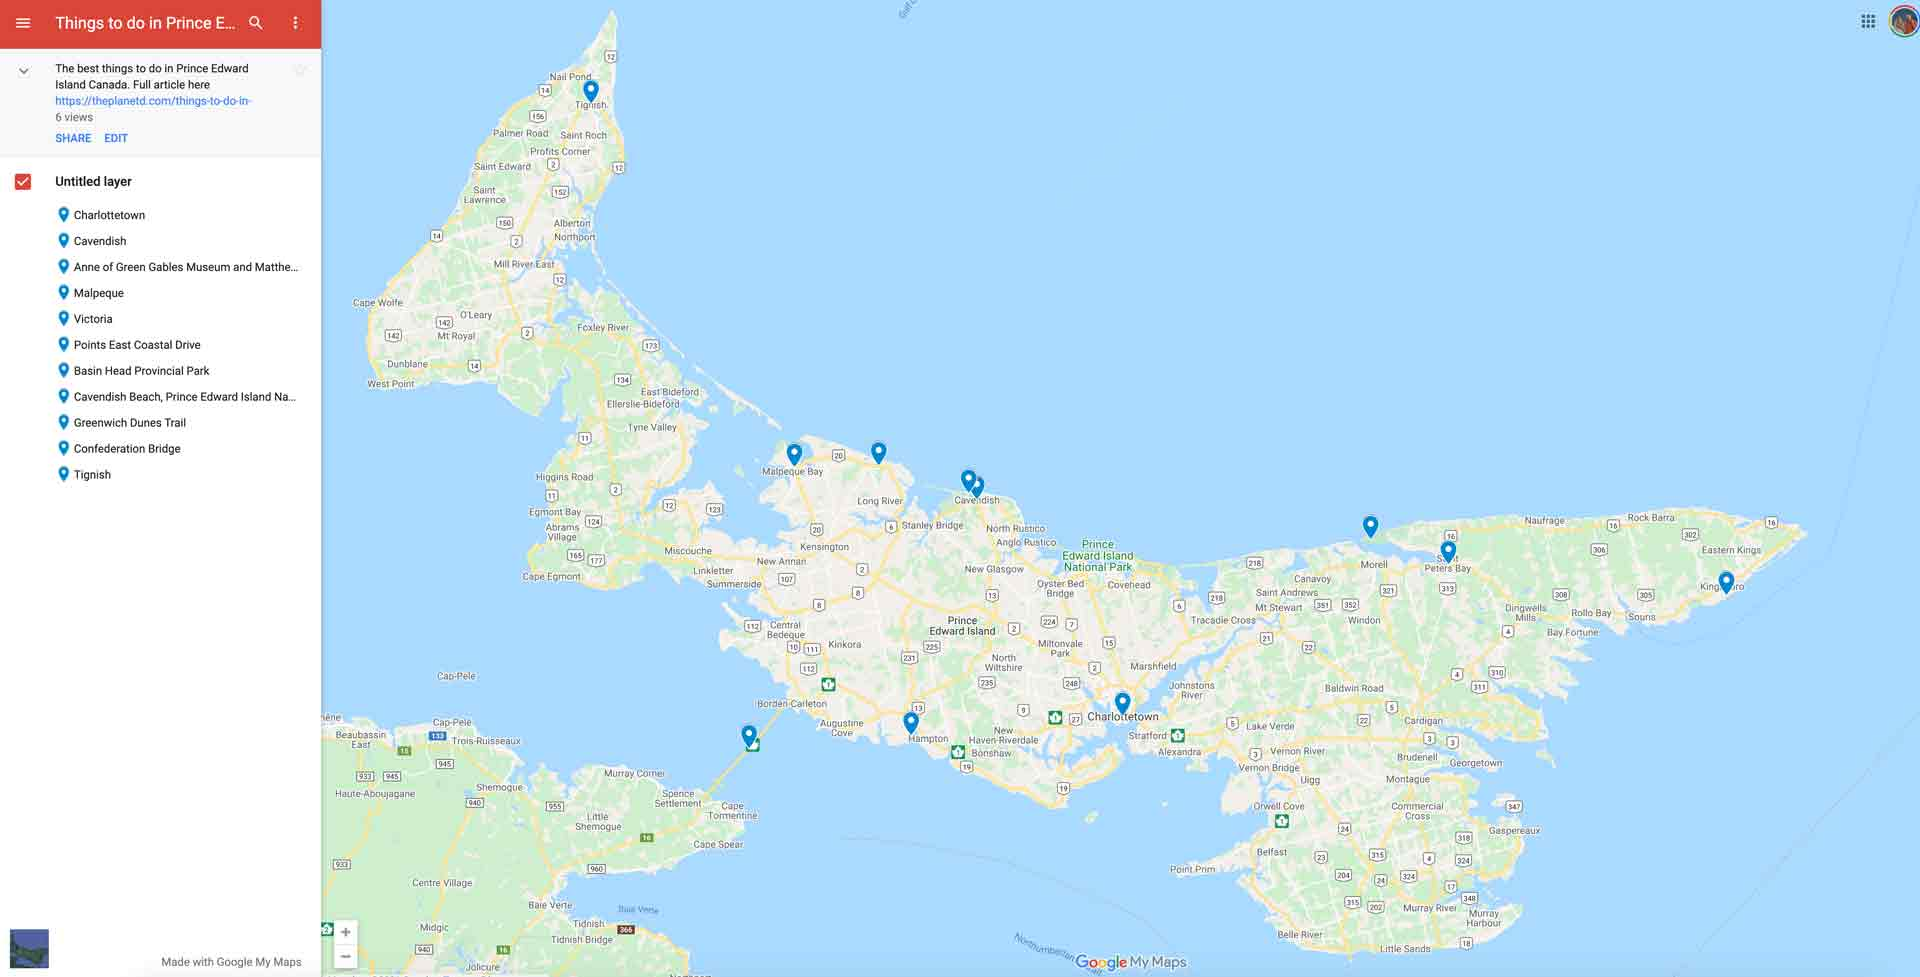 prince edward island attractions map